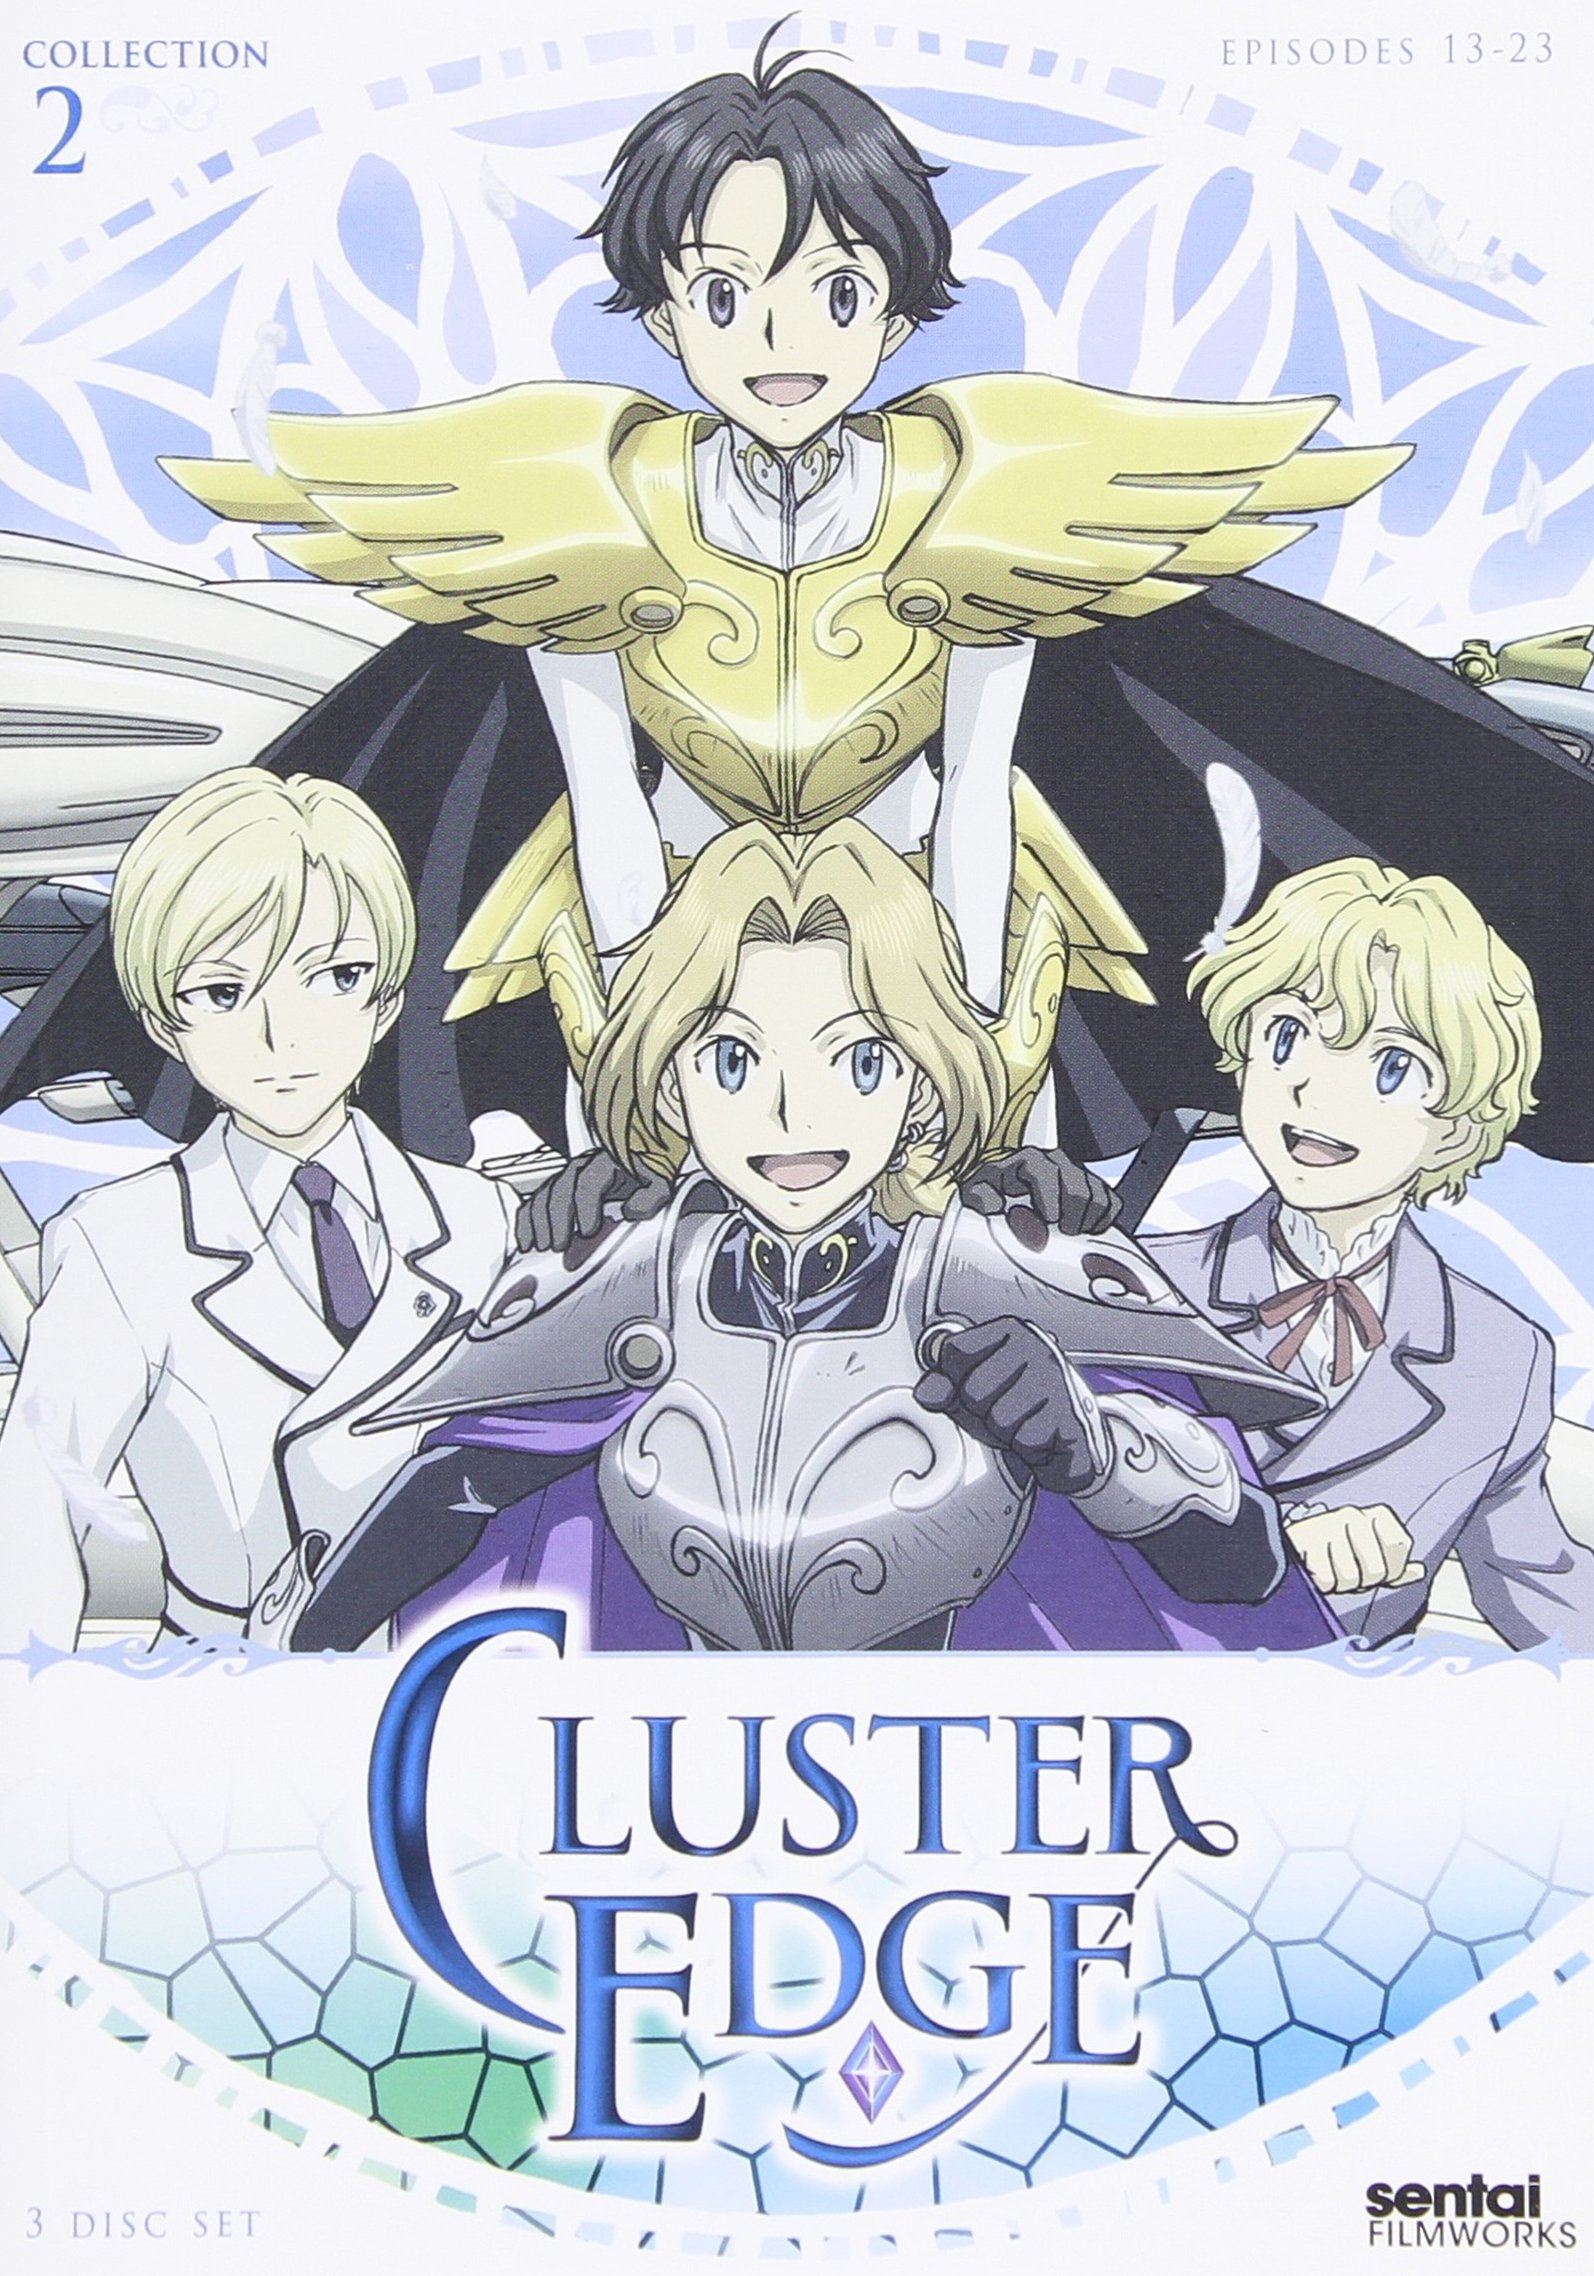 DVD : Cluster Edge: Collection 2 (Subtitled, 3PC)